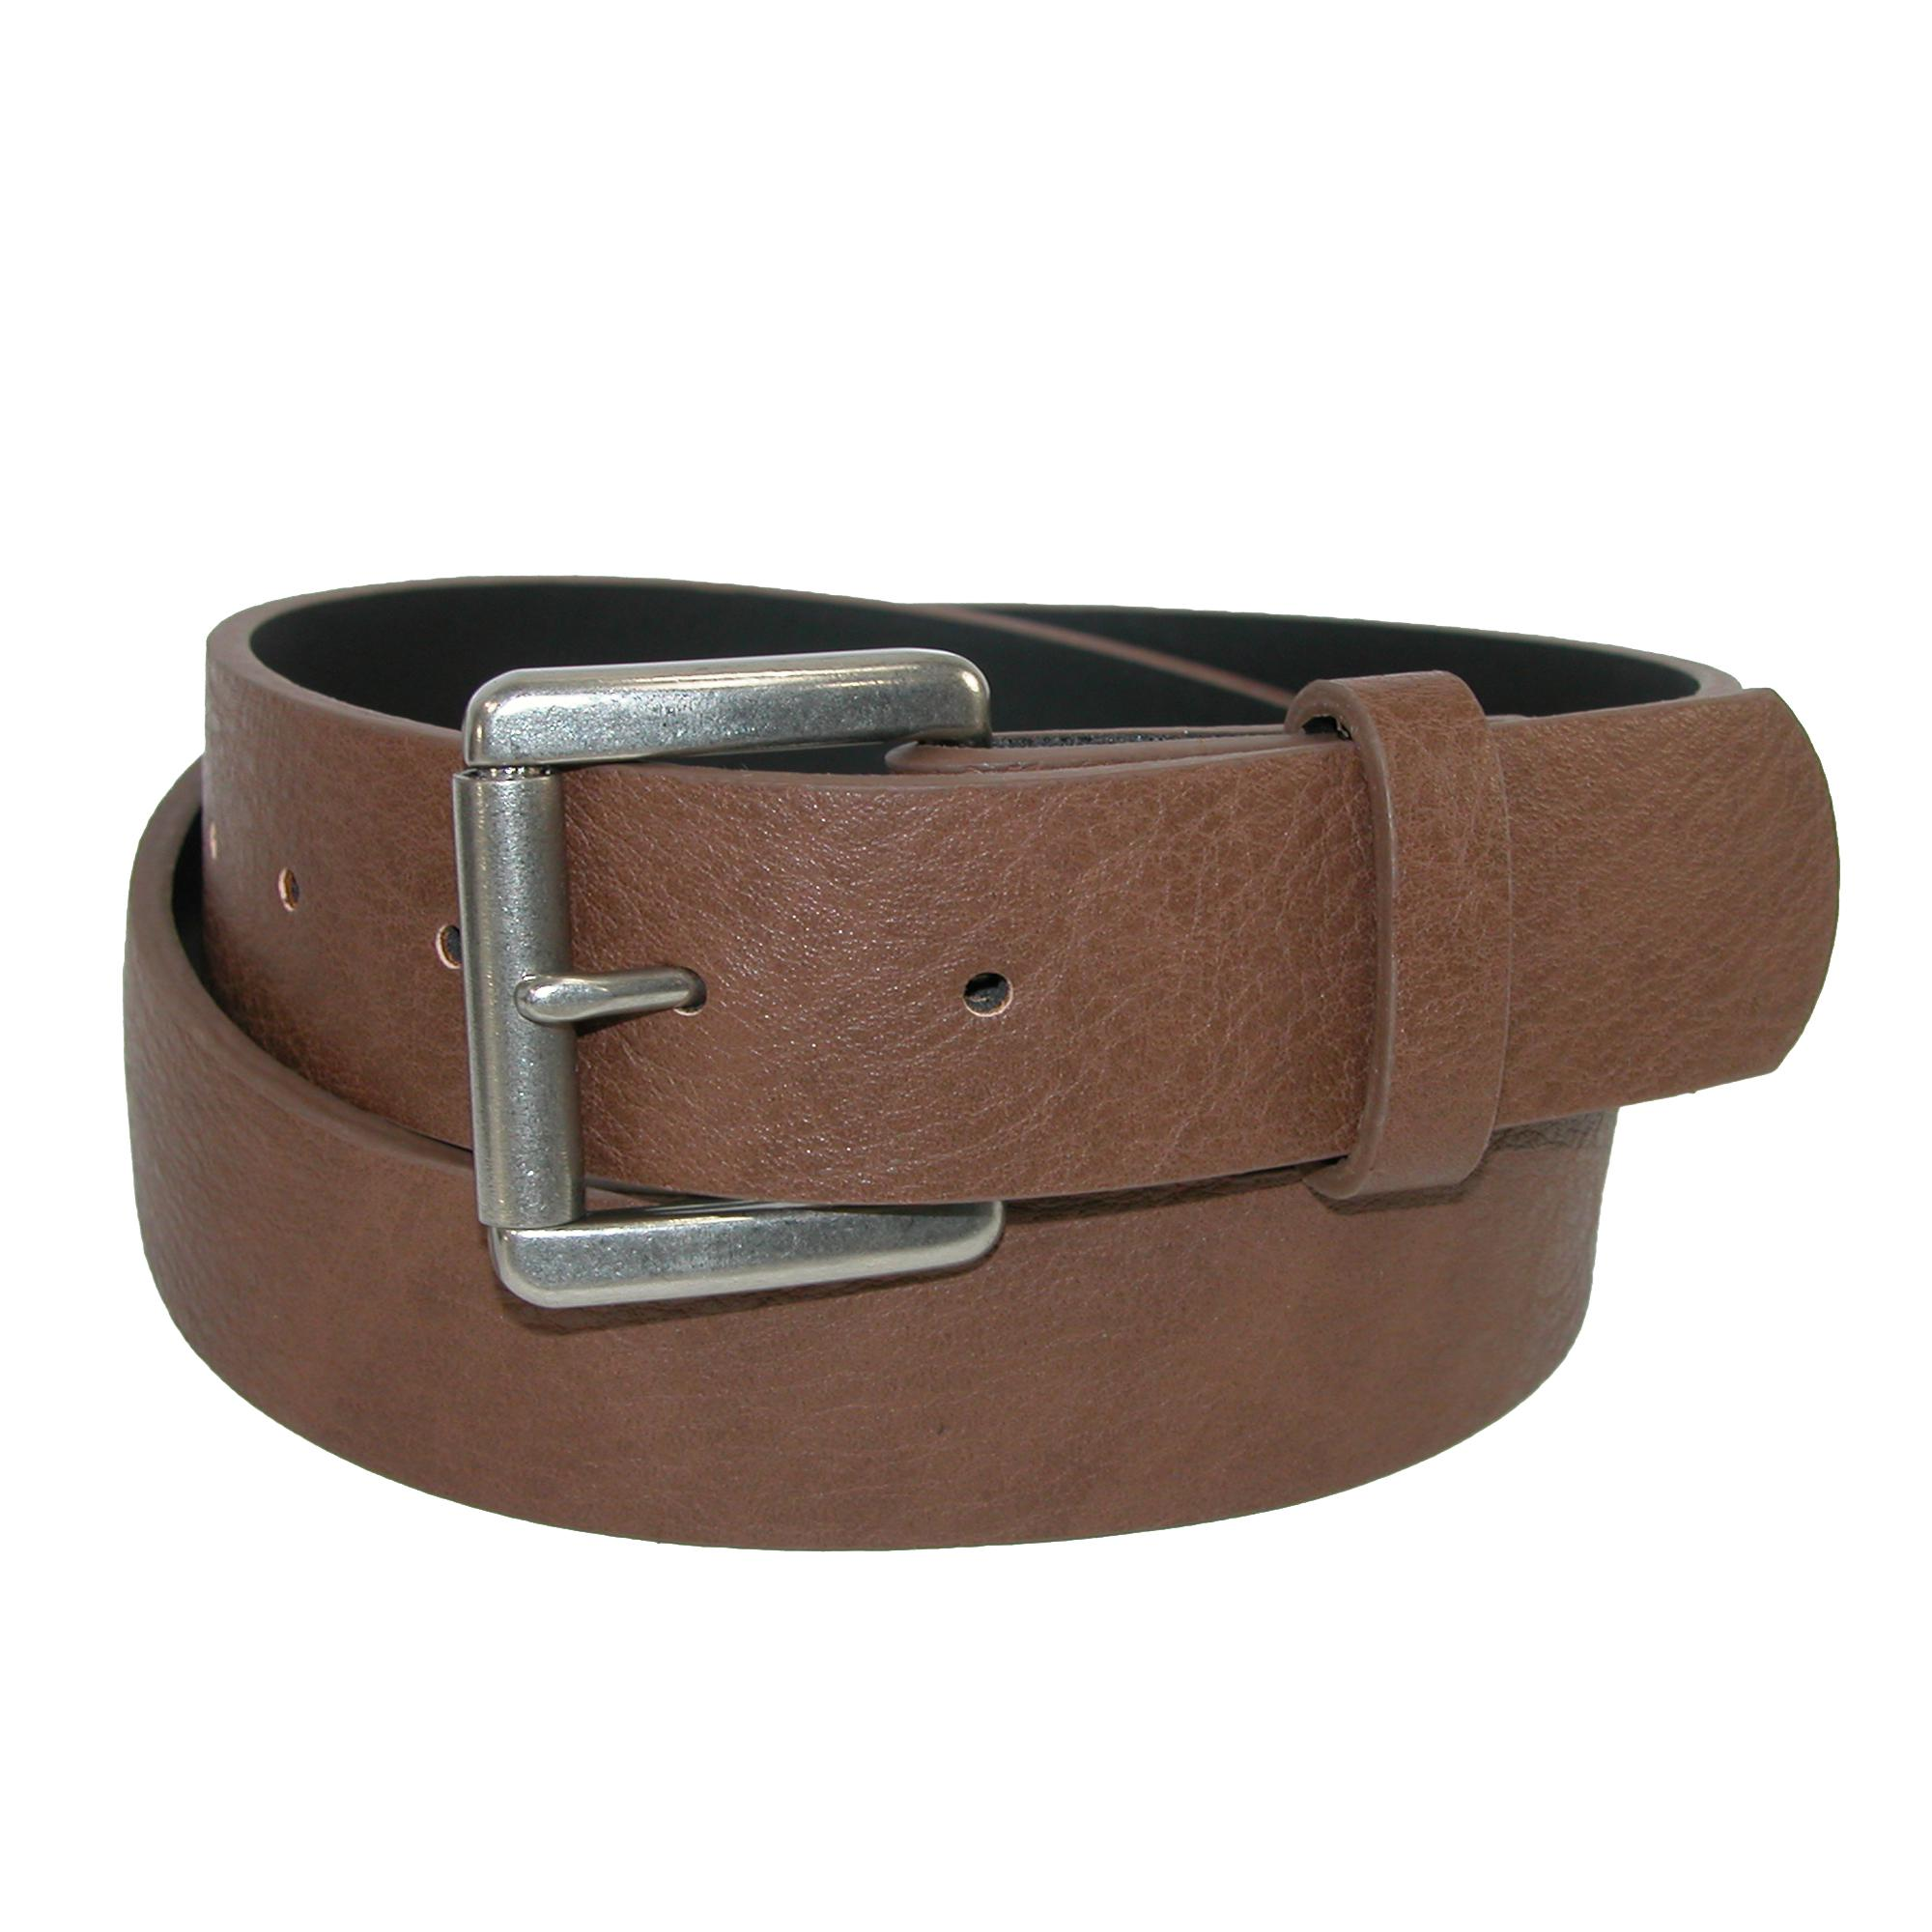 Ctm Mens Bridle Belt With Removable Roller Buckle